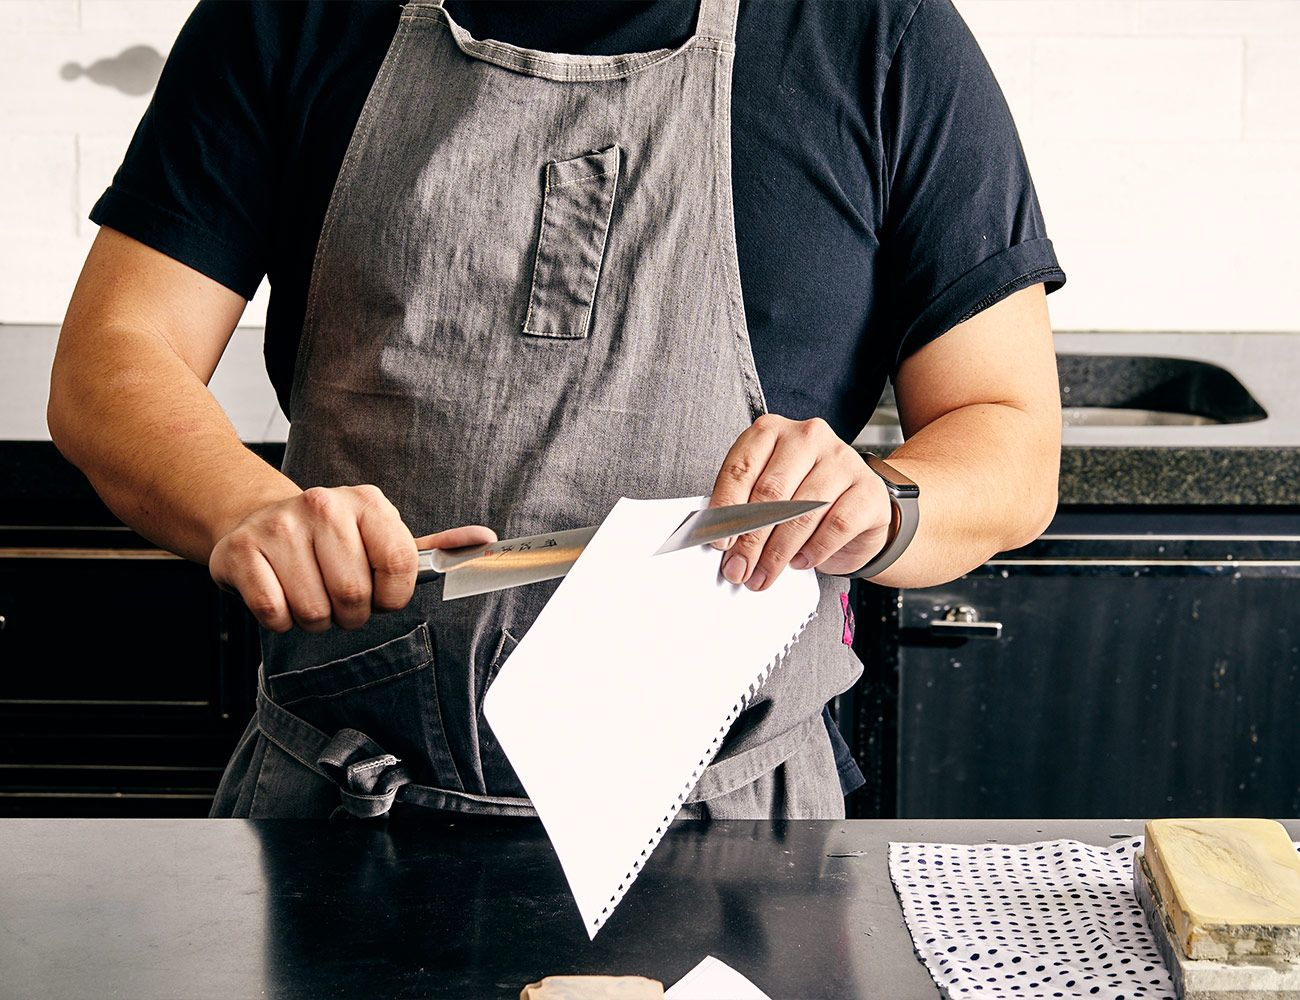 is the best way to sharpen kitchen knives how to sharpen kitchen knives the right way kitchen